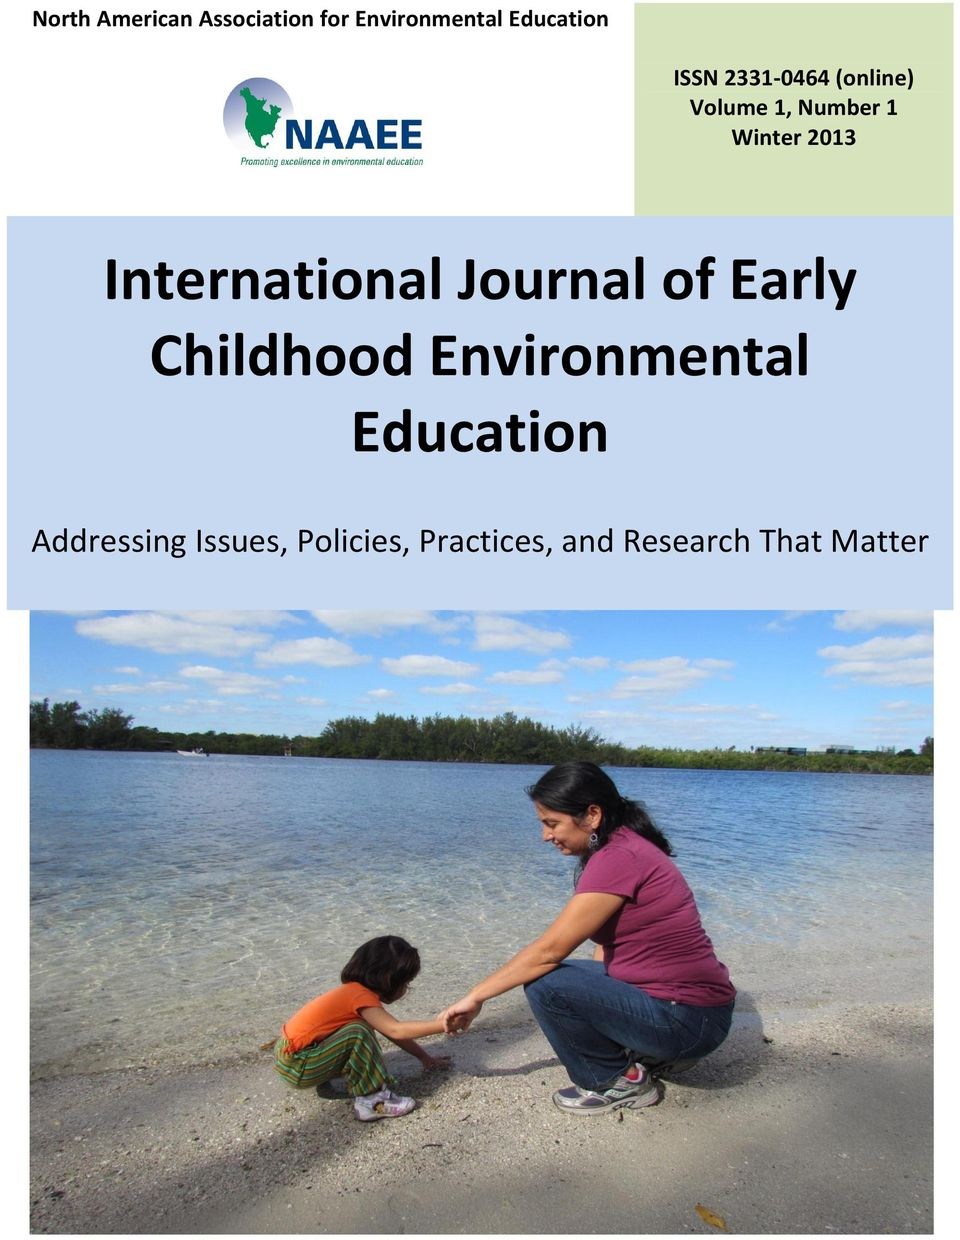 International Journal of Early Childhood Environmental